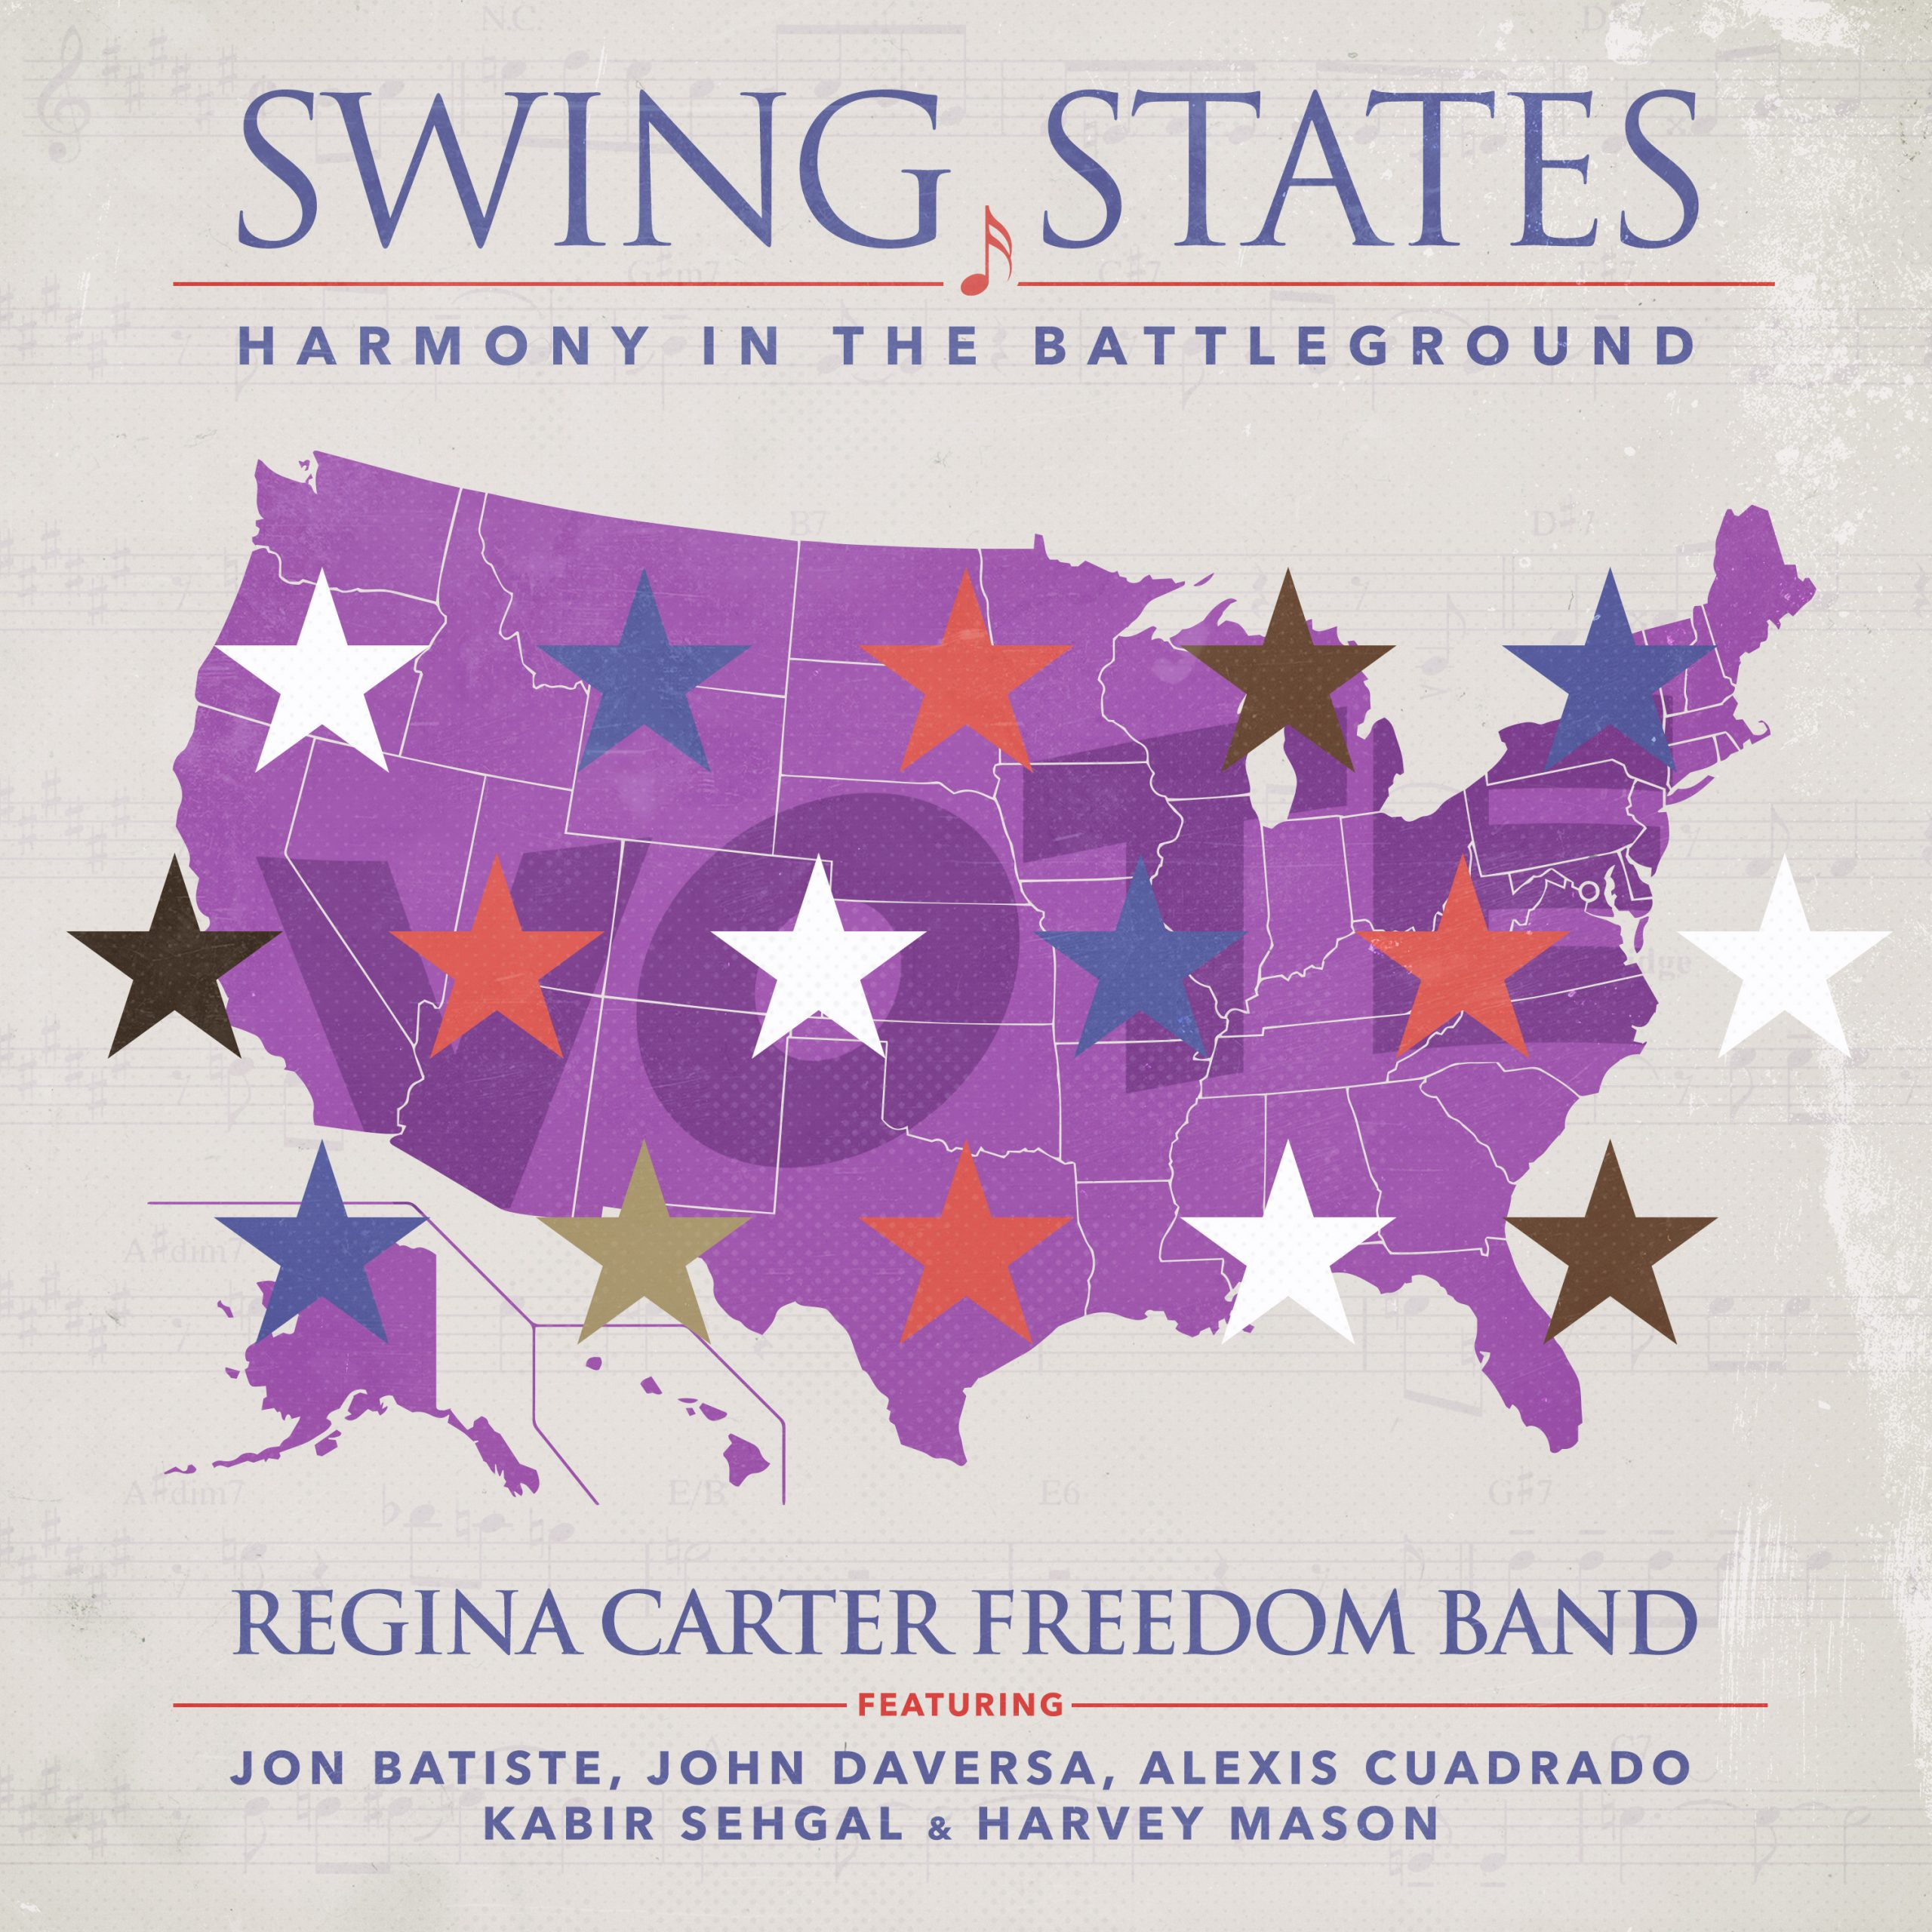 INTERVIEW: Regina Carter's message to the Swing States – Open Sky Jazz